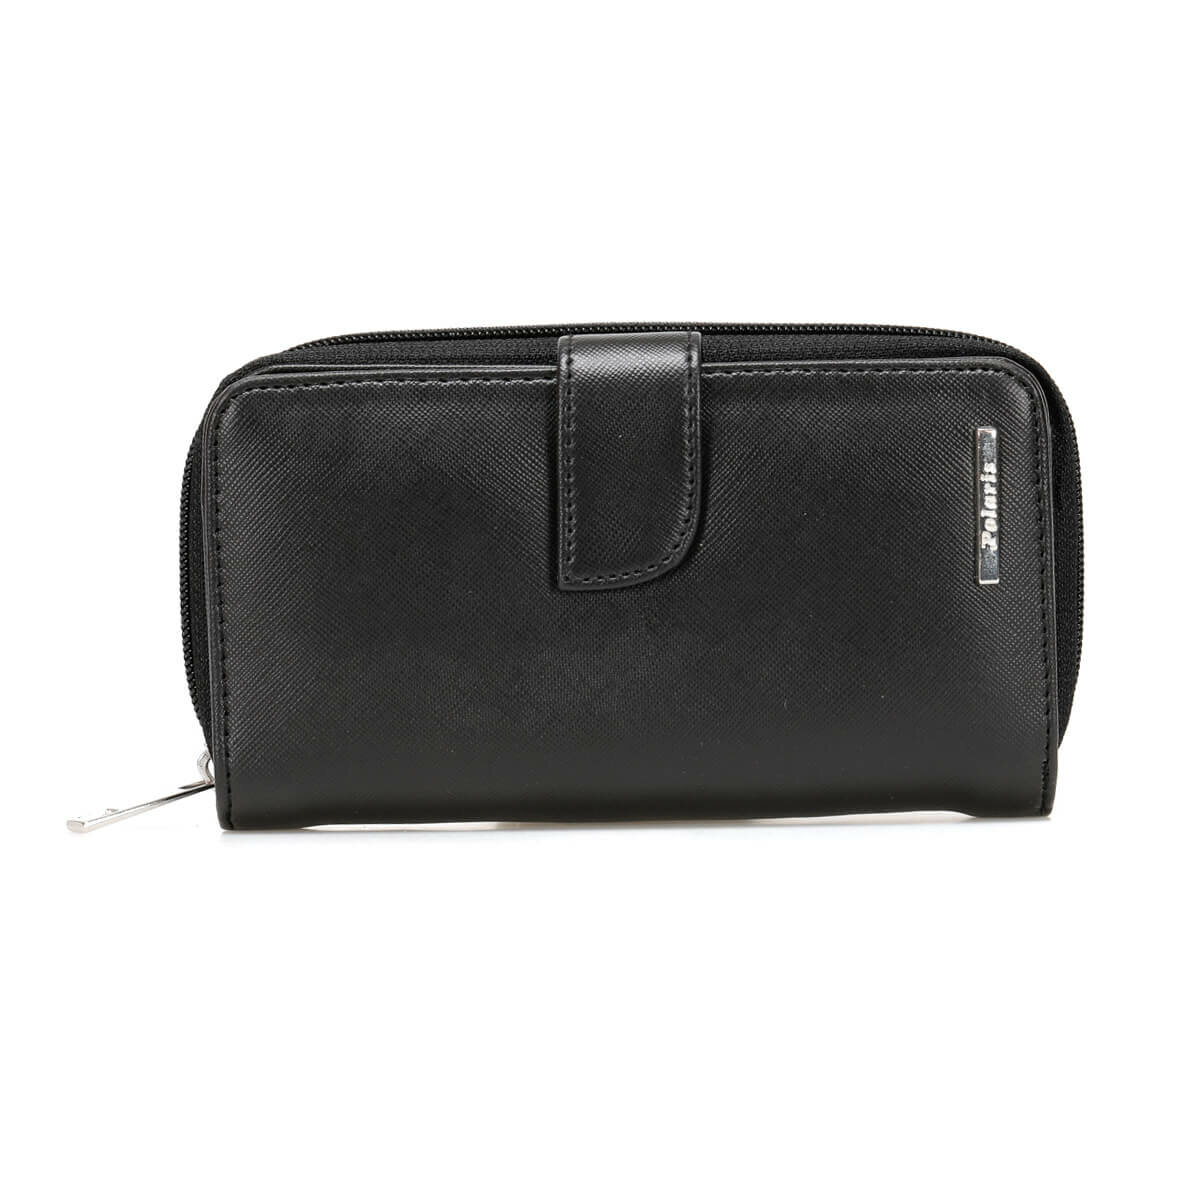 FLO 91.968. 002.D Black Women 'S Wallet Polaris